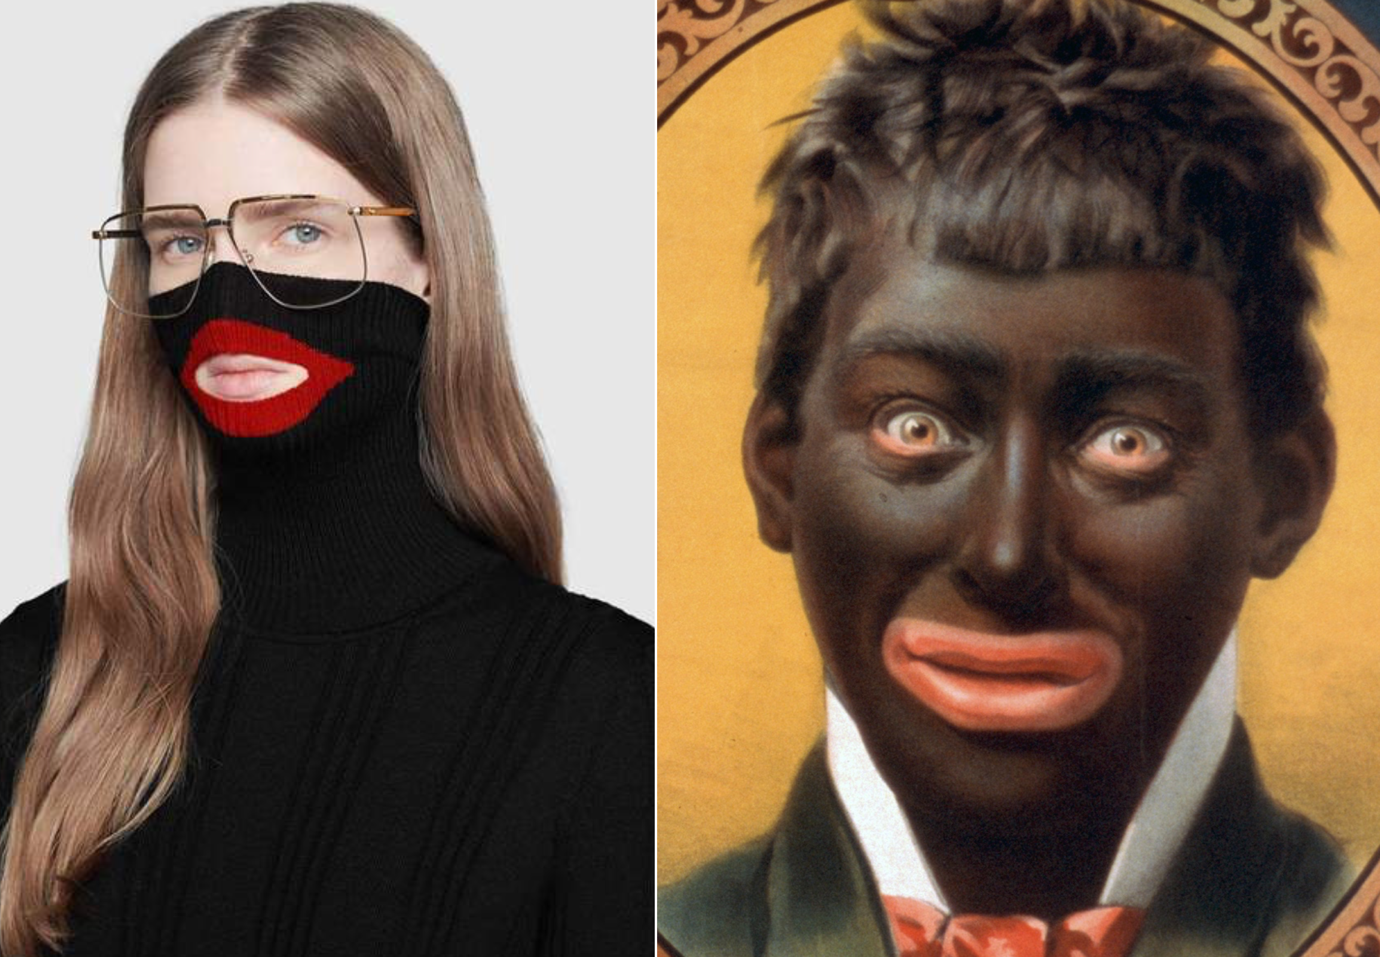 Two images shown side by side that are examples of blackface now and then. On the left a young white model wearing a black polo neck pulled up over her chin and nose, her lips are visible through a gap in the fabric which is lined by a red lip print. On the right is a picture of a white man in blackface from a poster advertising a minstrel show in late 1800s - early 1900s.